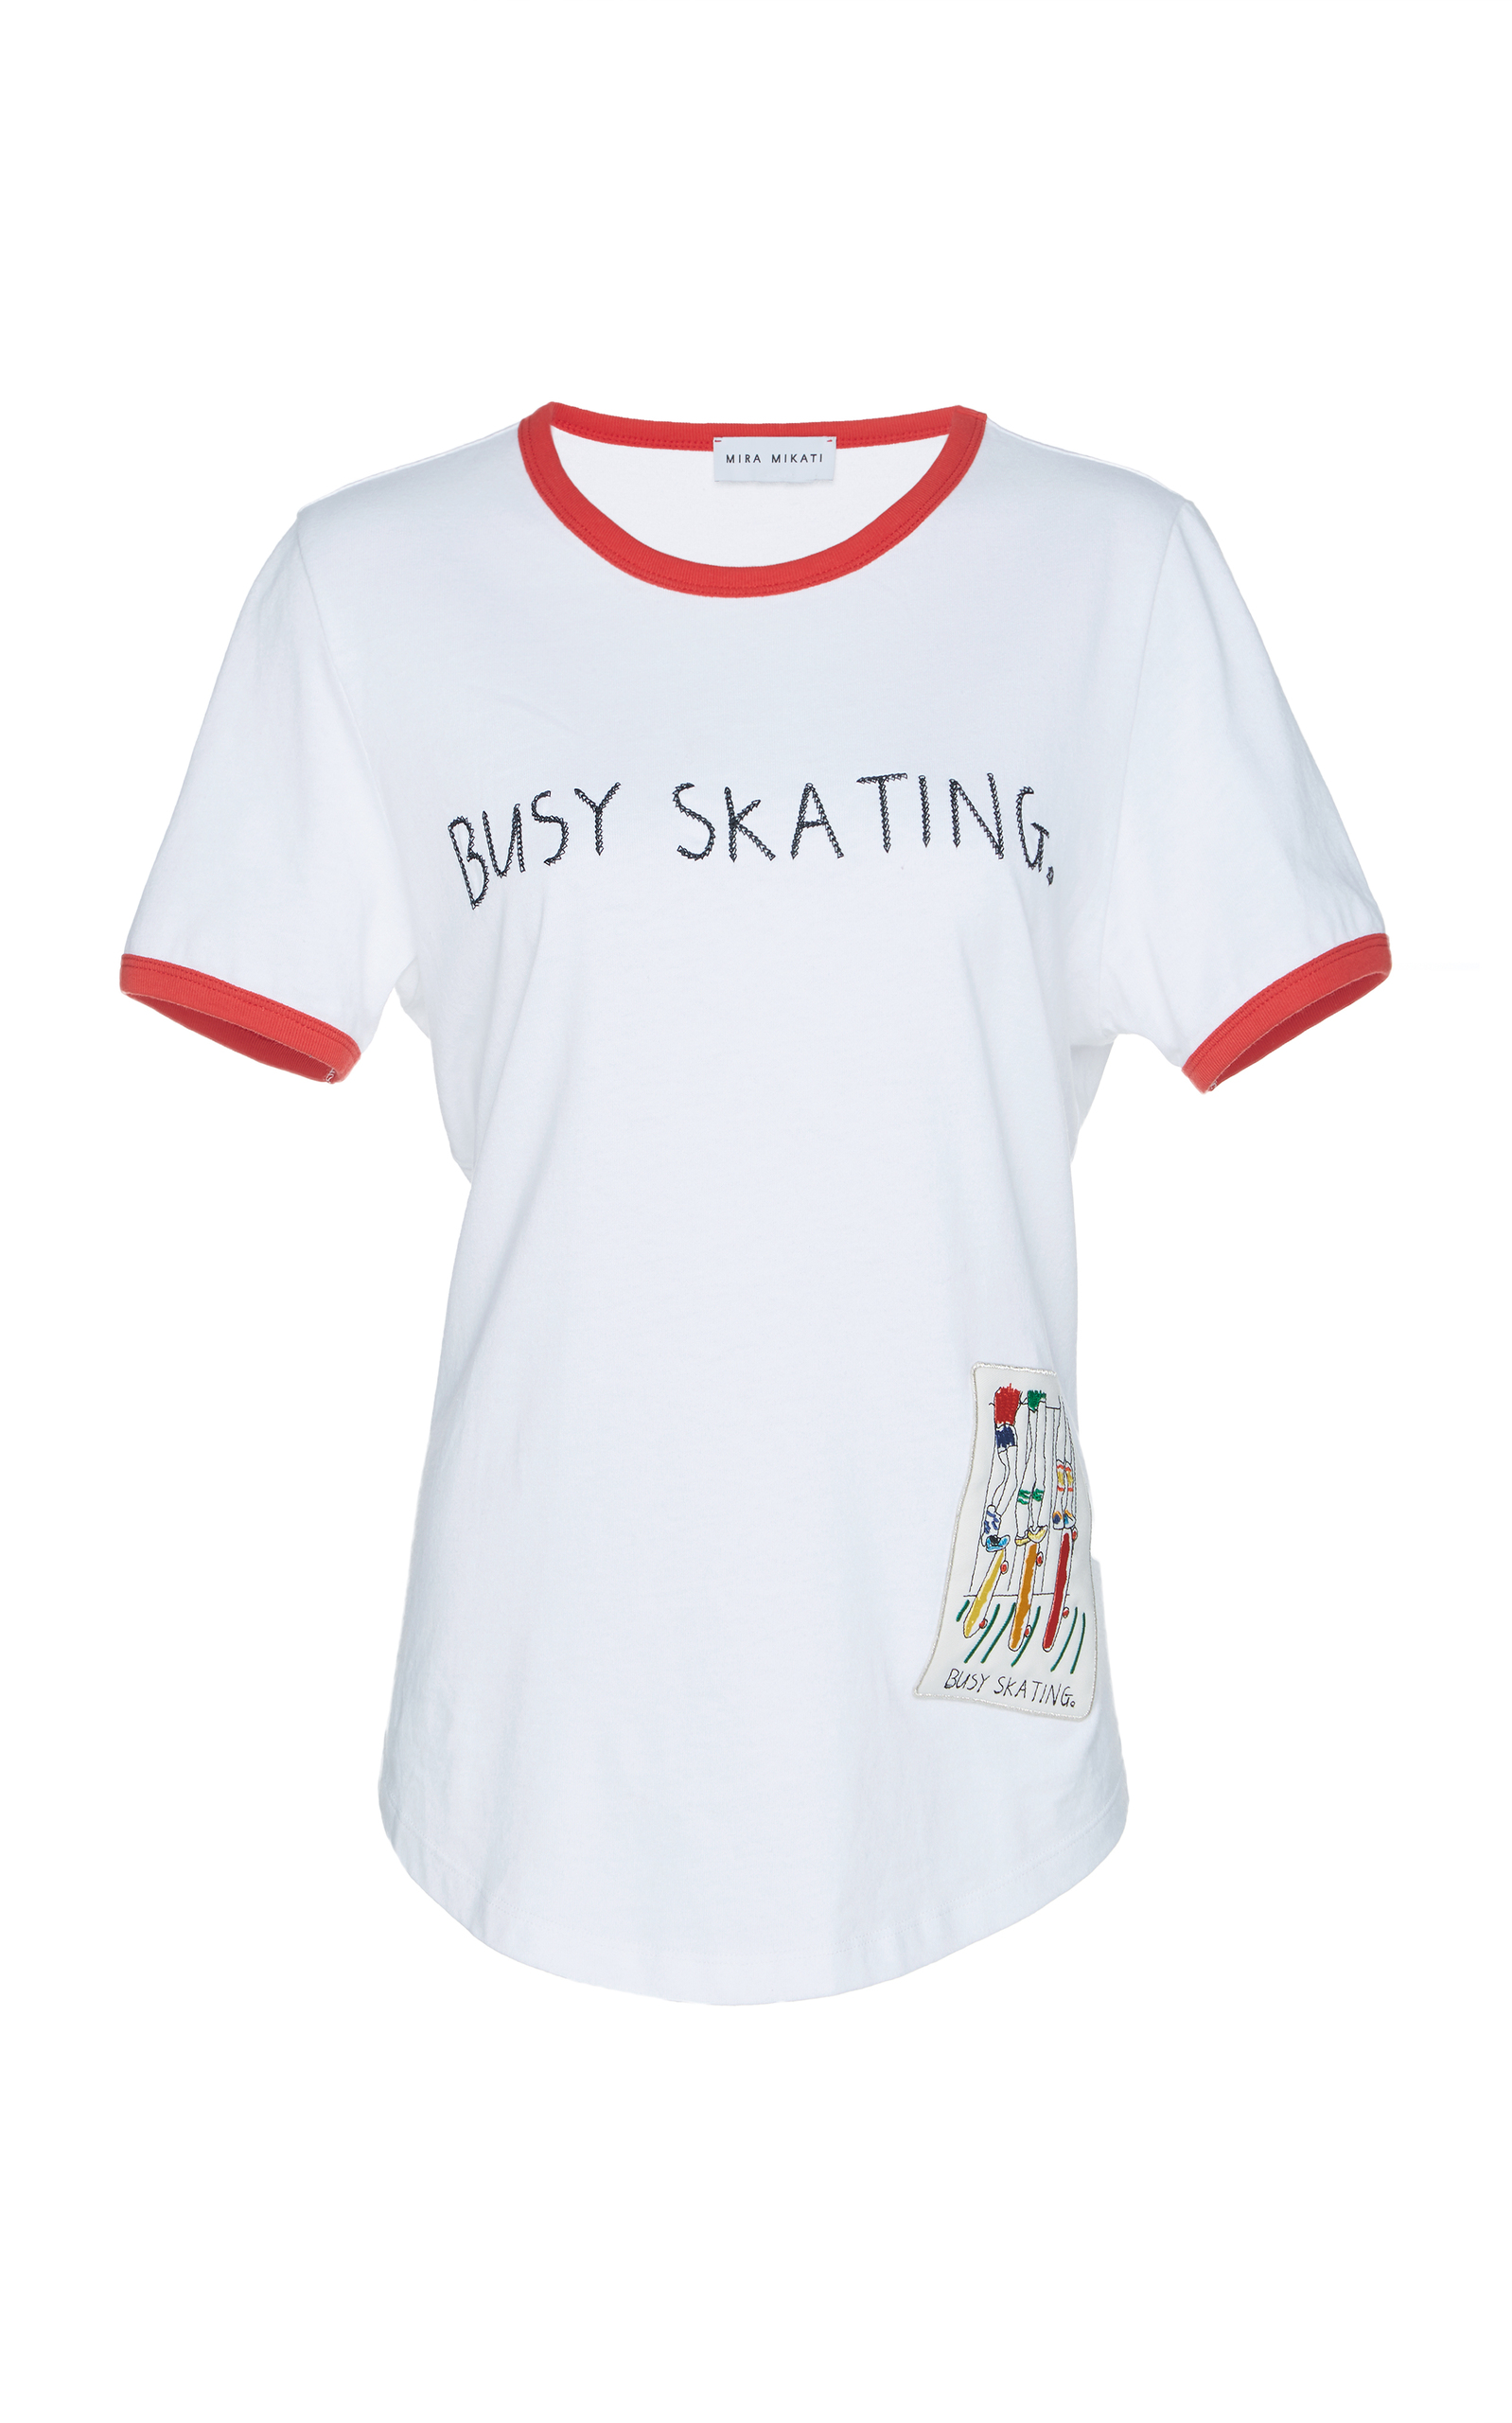 Busy Skating Cotton T-Shirt, White